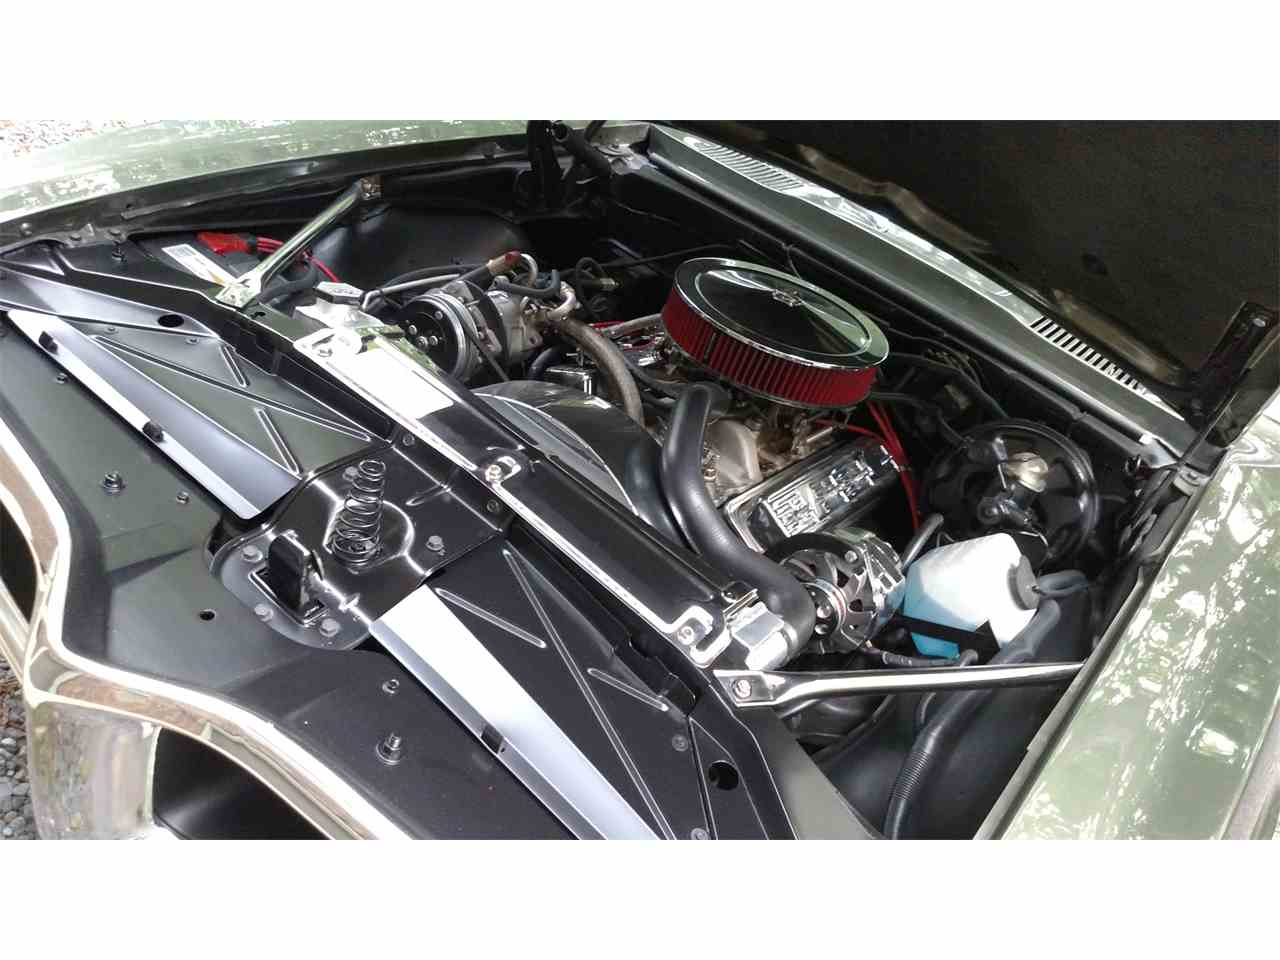 Large Picture of Classic '68 Pontiac Firebird located in Lusby Maryland - $31,495.00 Offered by a Private Seller - NI9T